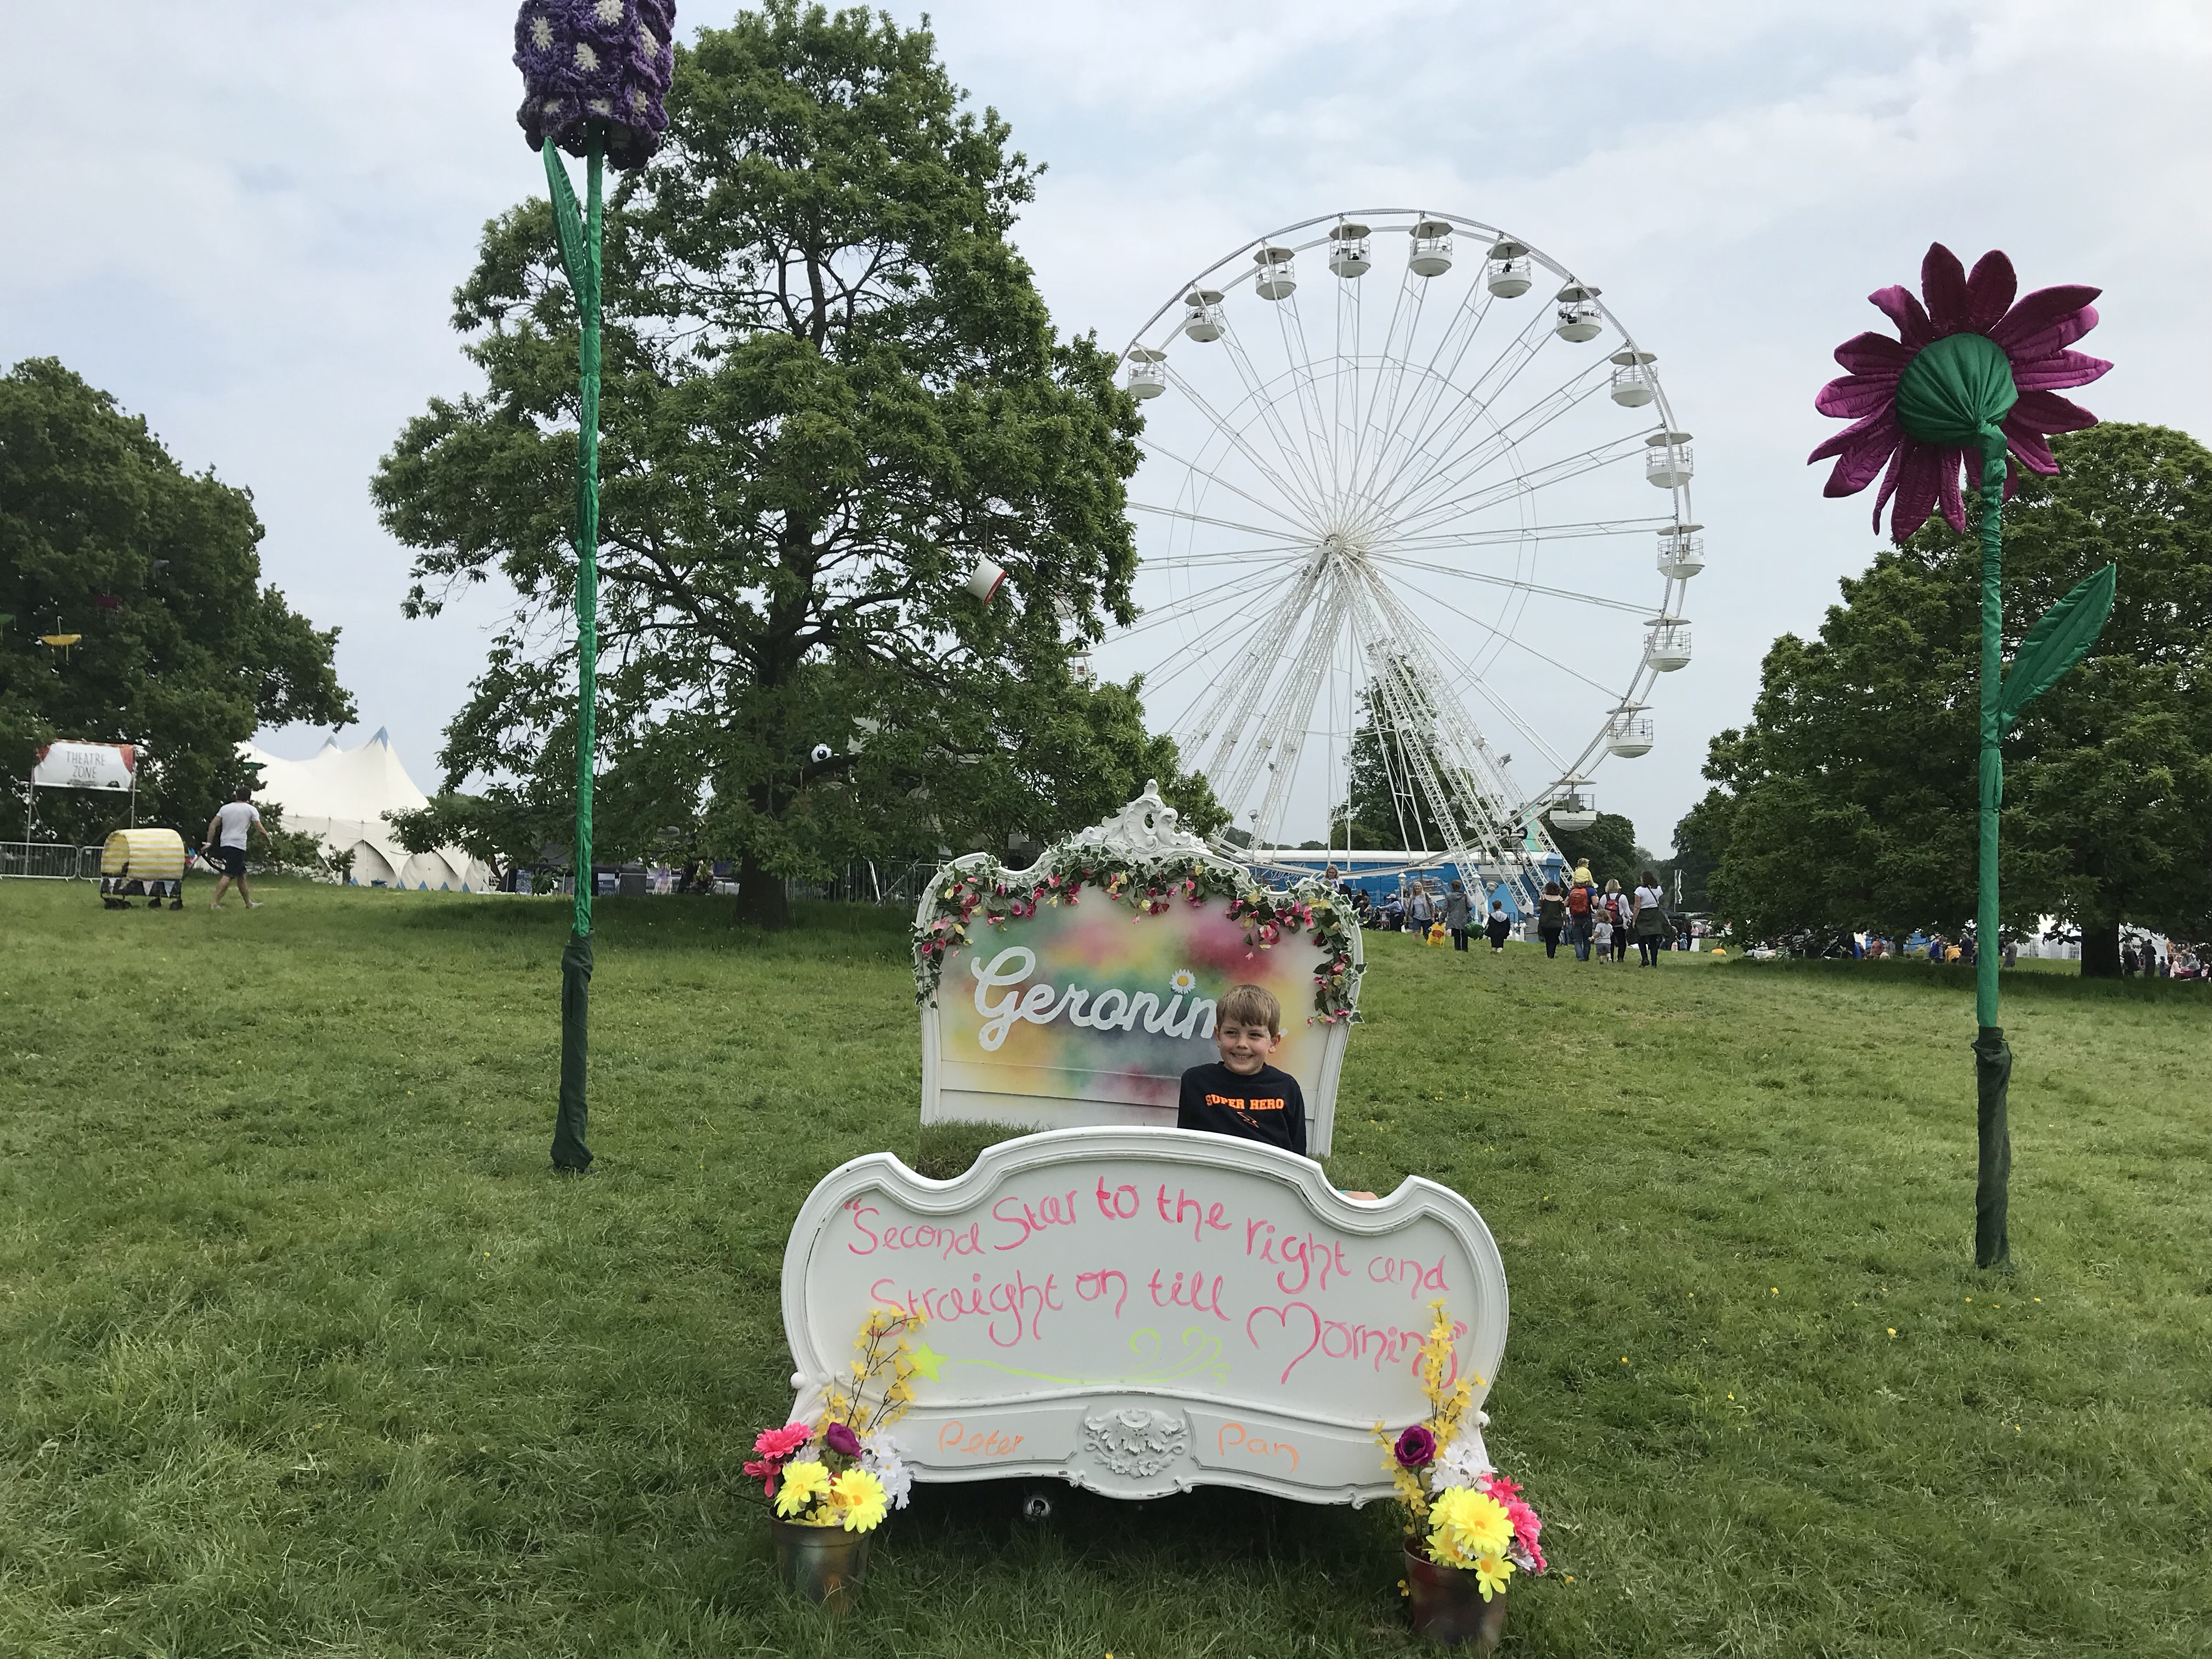 My son, sitting on a bed on the grass at Geronimo Festival, with 'Second star to the right and straight on til morning' written on the foot of the bed. Giant flowers around him and a Ferris wheel behind.